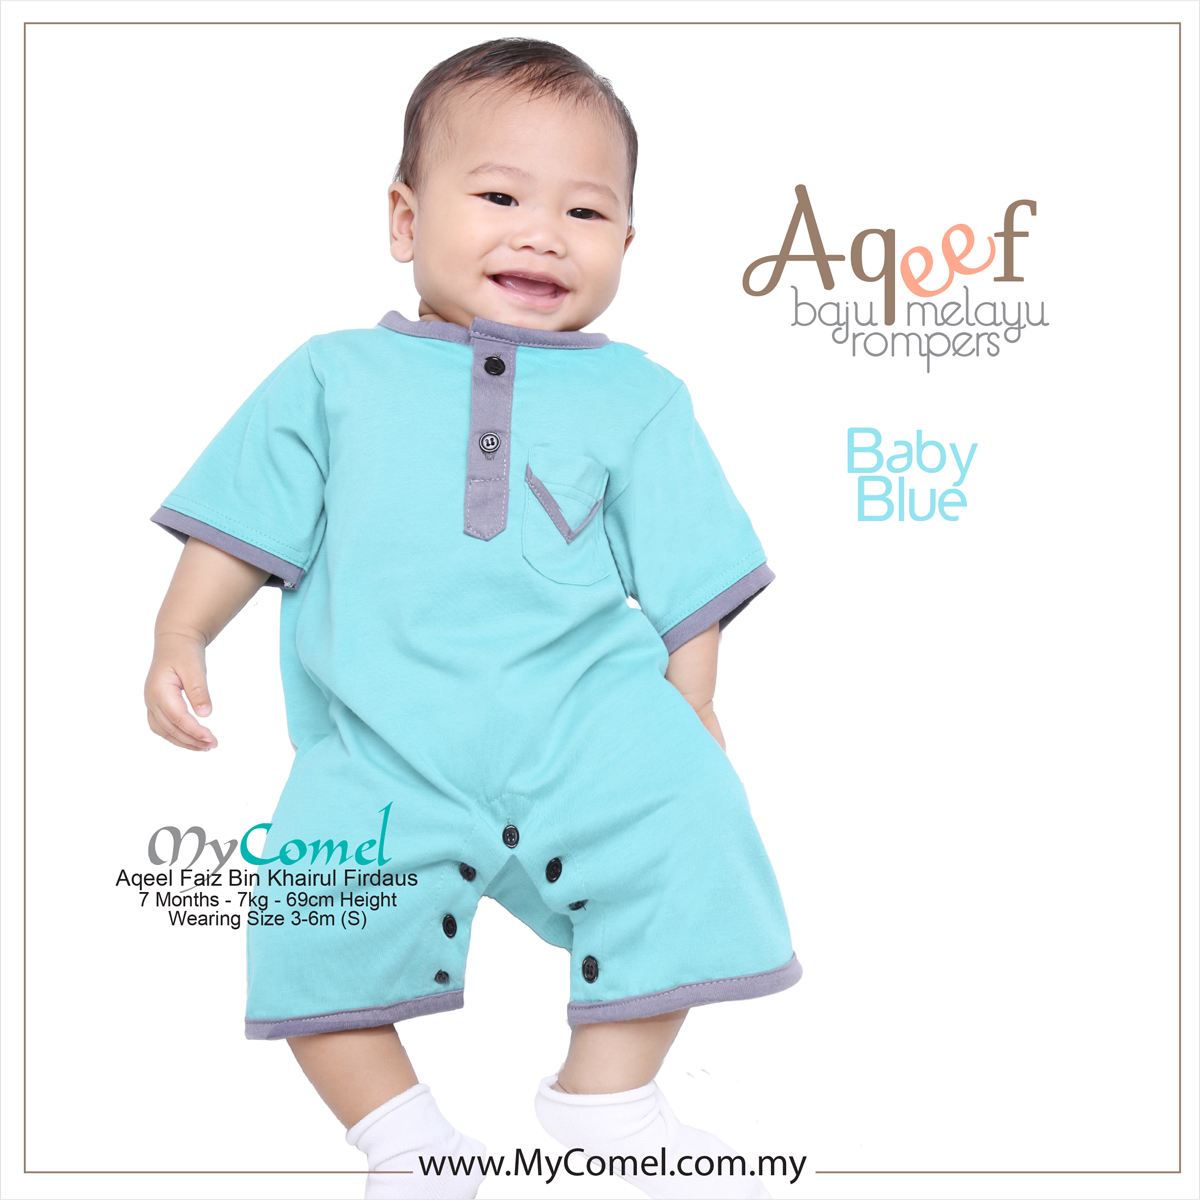 Baby Romper, baby boy romper, boys romper, boys one piece, baby boy onesie, baby boy outfit, monogram romper, monogrammed romper, baby boy DeshlerDesigns. 5 out of 5 stars () $ Bestseller Favorite Add to See similar items + More like this.